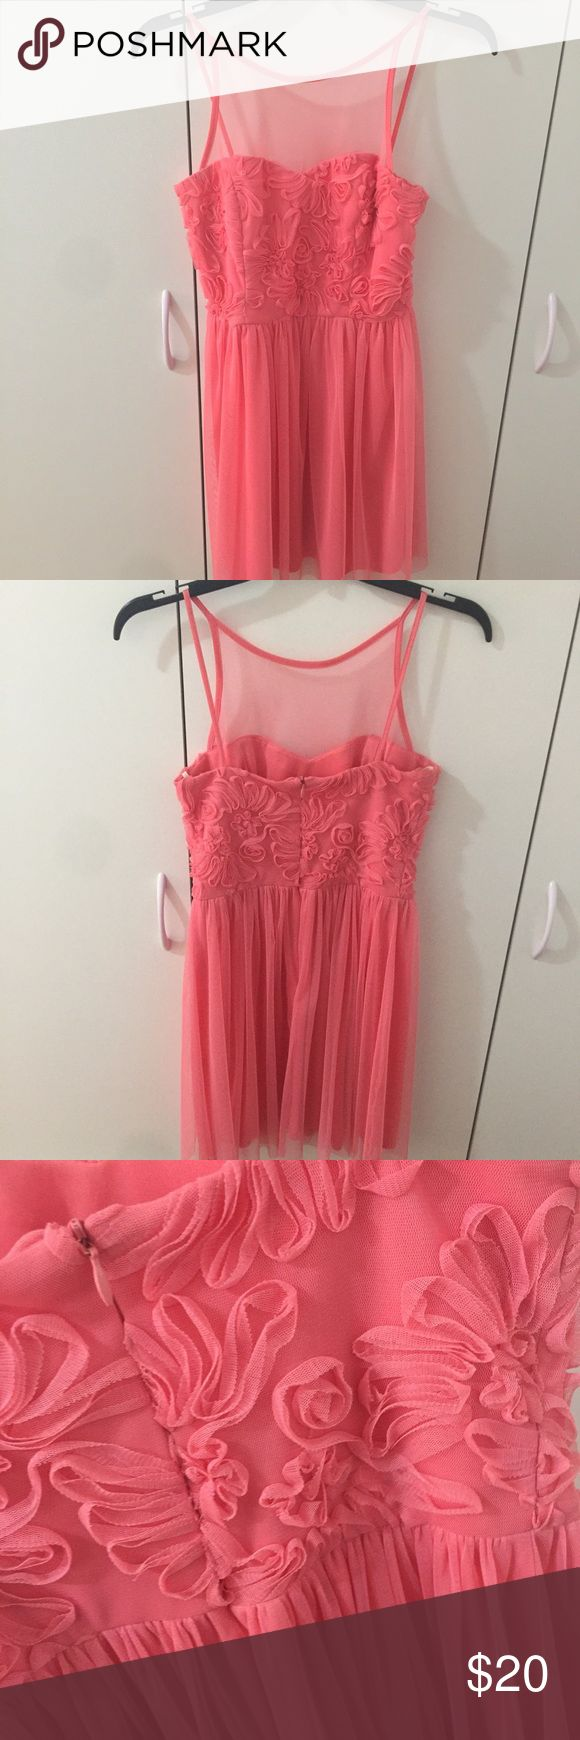 Pink short dress Only worn once for party. In great condition and great for parties and occasions. Jump Dresses Mini